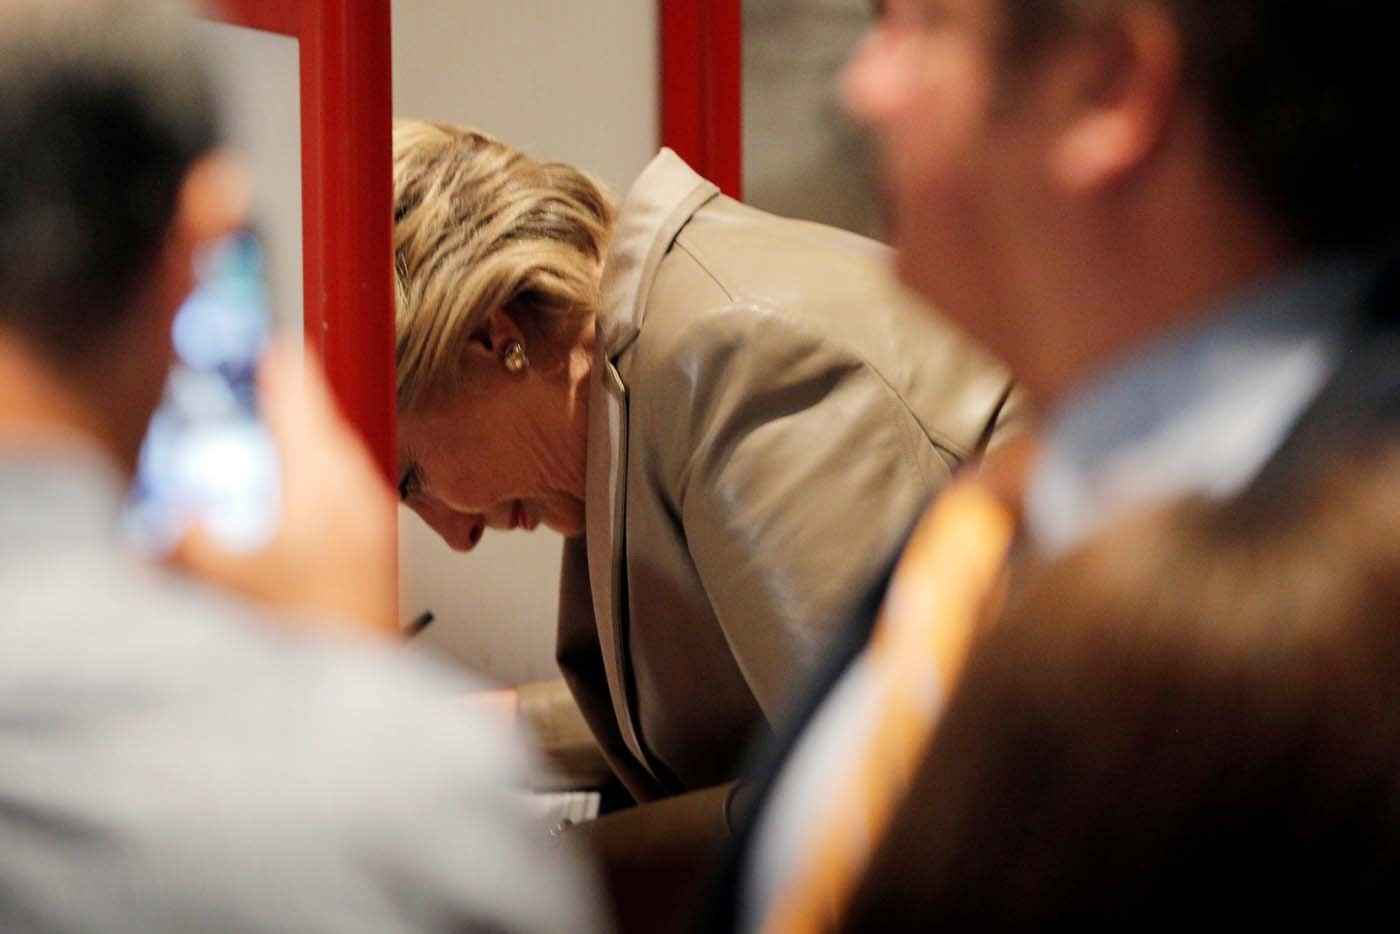 2016-11-08T134115Z_1063101621_D1BEULQUOPAA_RTRMADP_3_USA-ELECTION-CLINTON